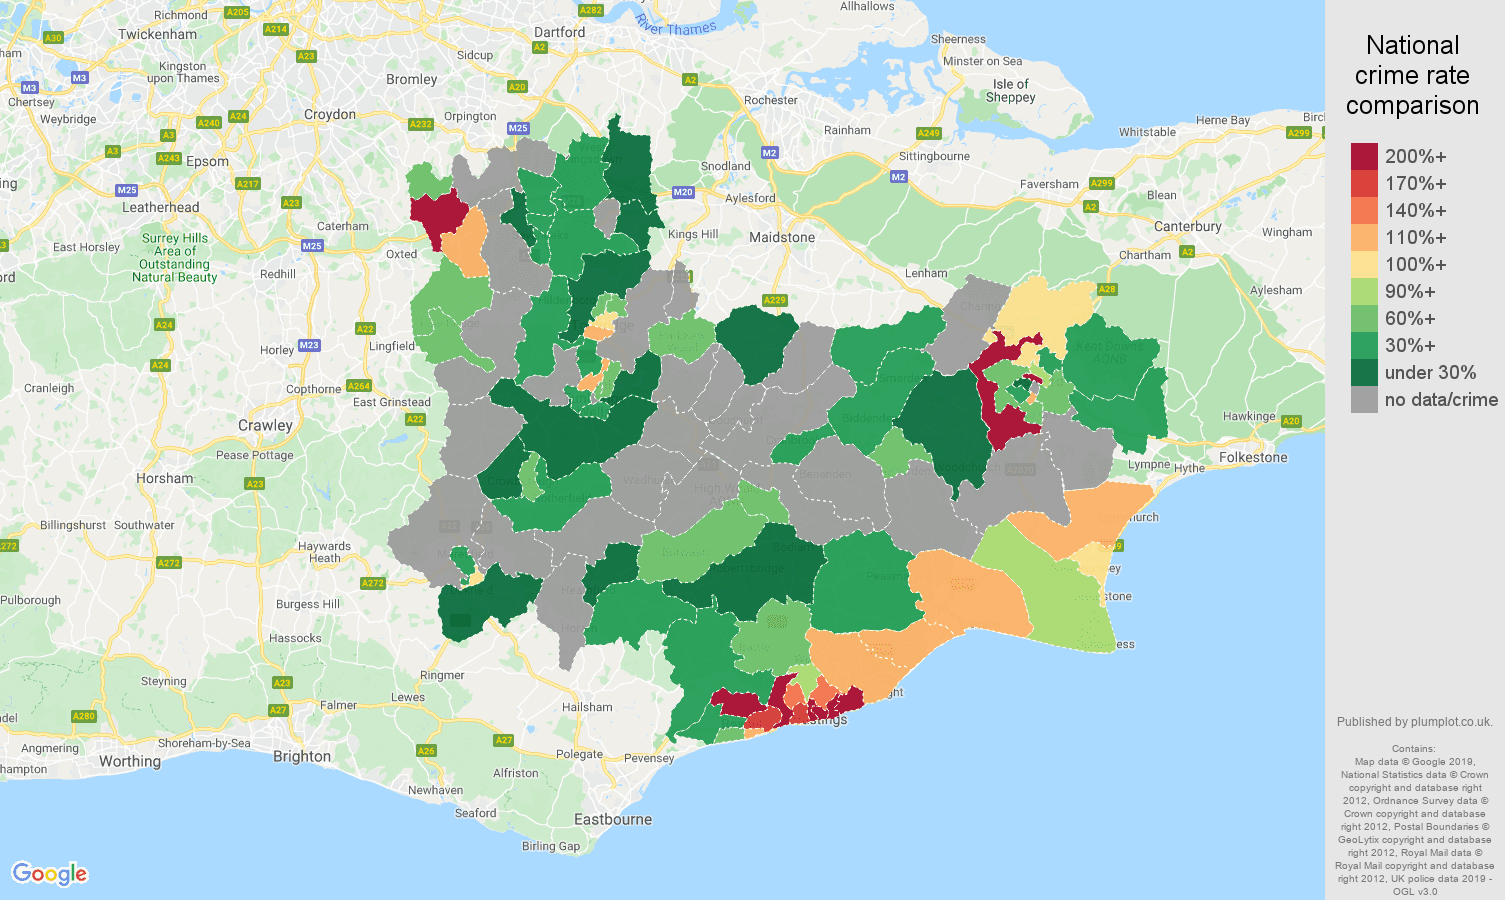 Tonbridge possession of weapons crime rate comparison map